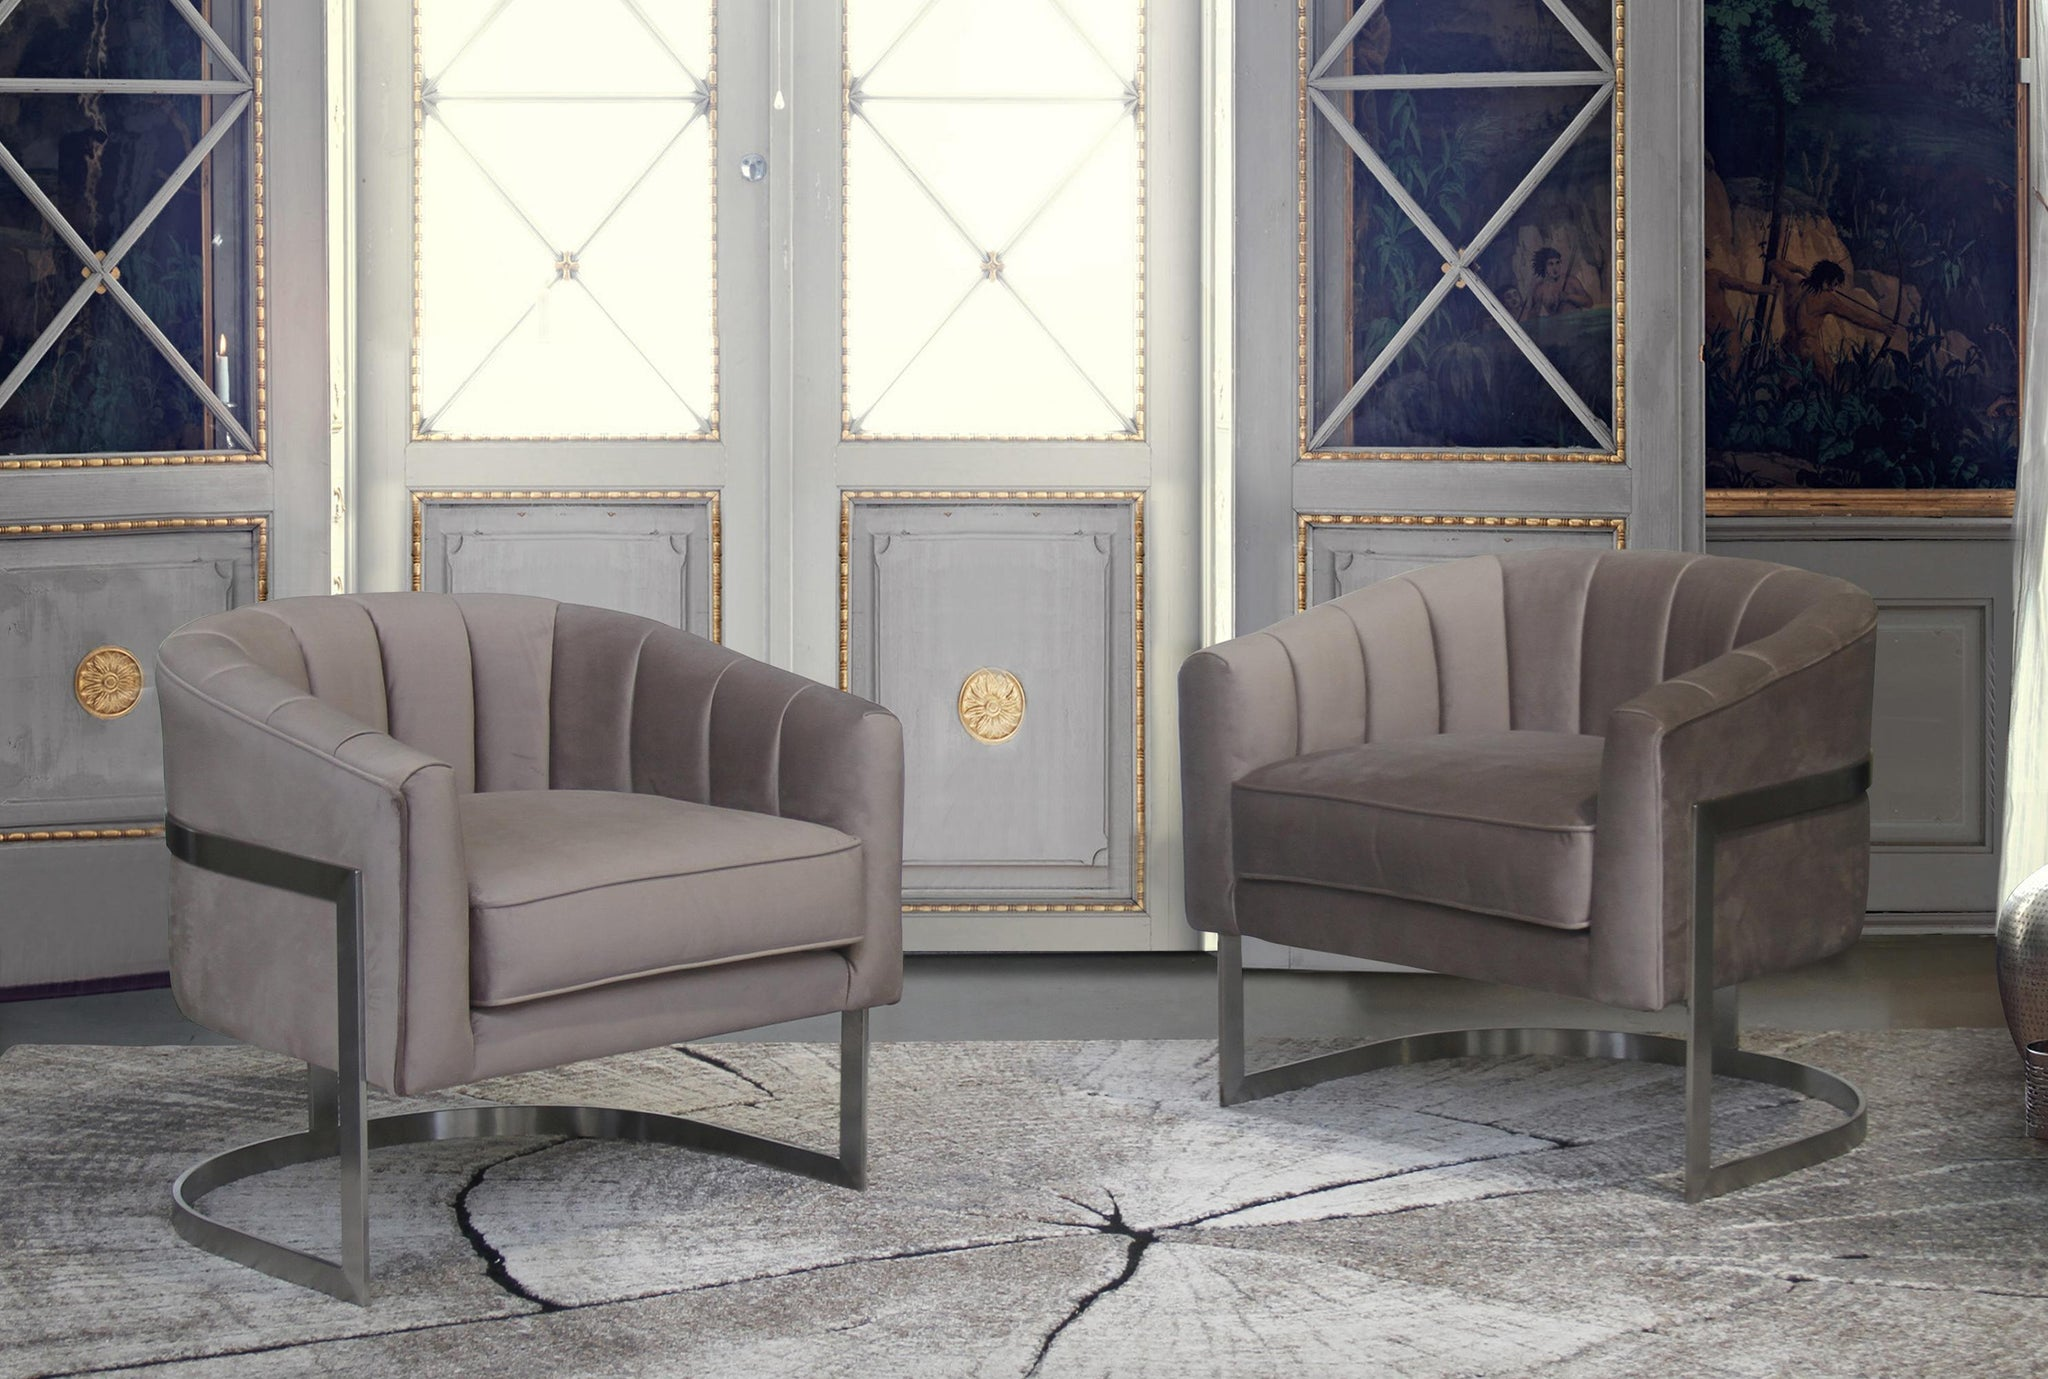 Armen Living Paloma Contemporary Accent Chair in Brushed Stainless Steel Finish with Beige Fabric